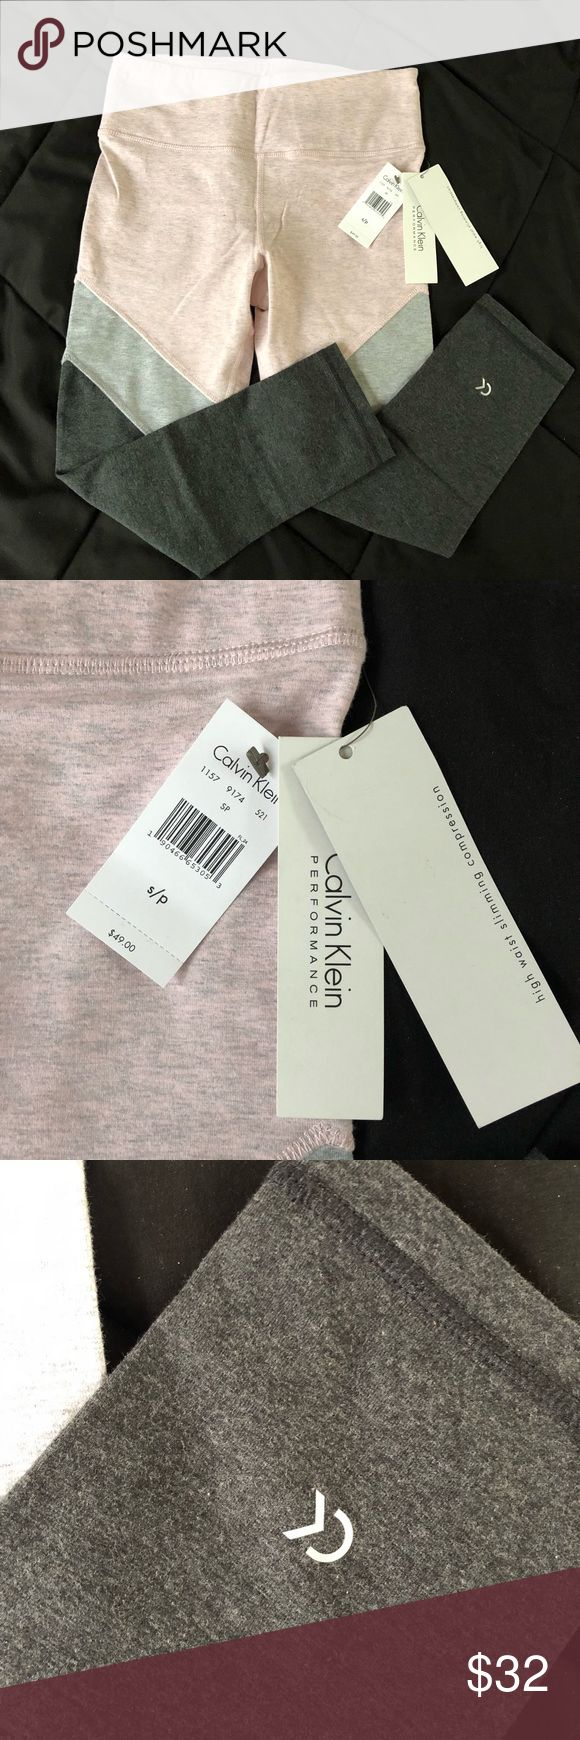 Calvin Klein Performance Leggings From the Calvin Klein Performance line. These are comfortable and fitting. Great for working out, yoga, running, etc. Soft pink, heather grey and charcoal grey color block pattern. Has a pocket for a cards or keys on the waistband. Brand new with tags. They have a small stitching flaw shown in pic. Calvin Klein Pants Leggings